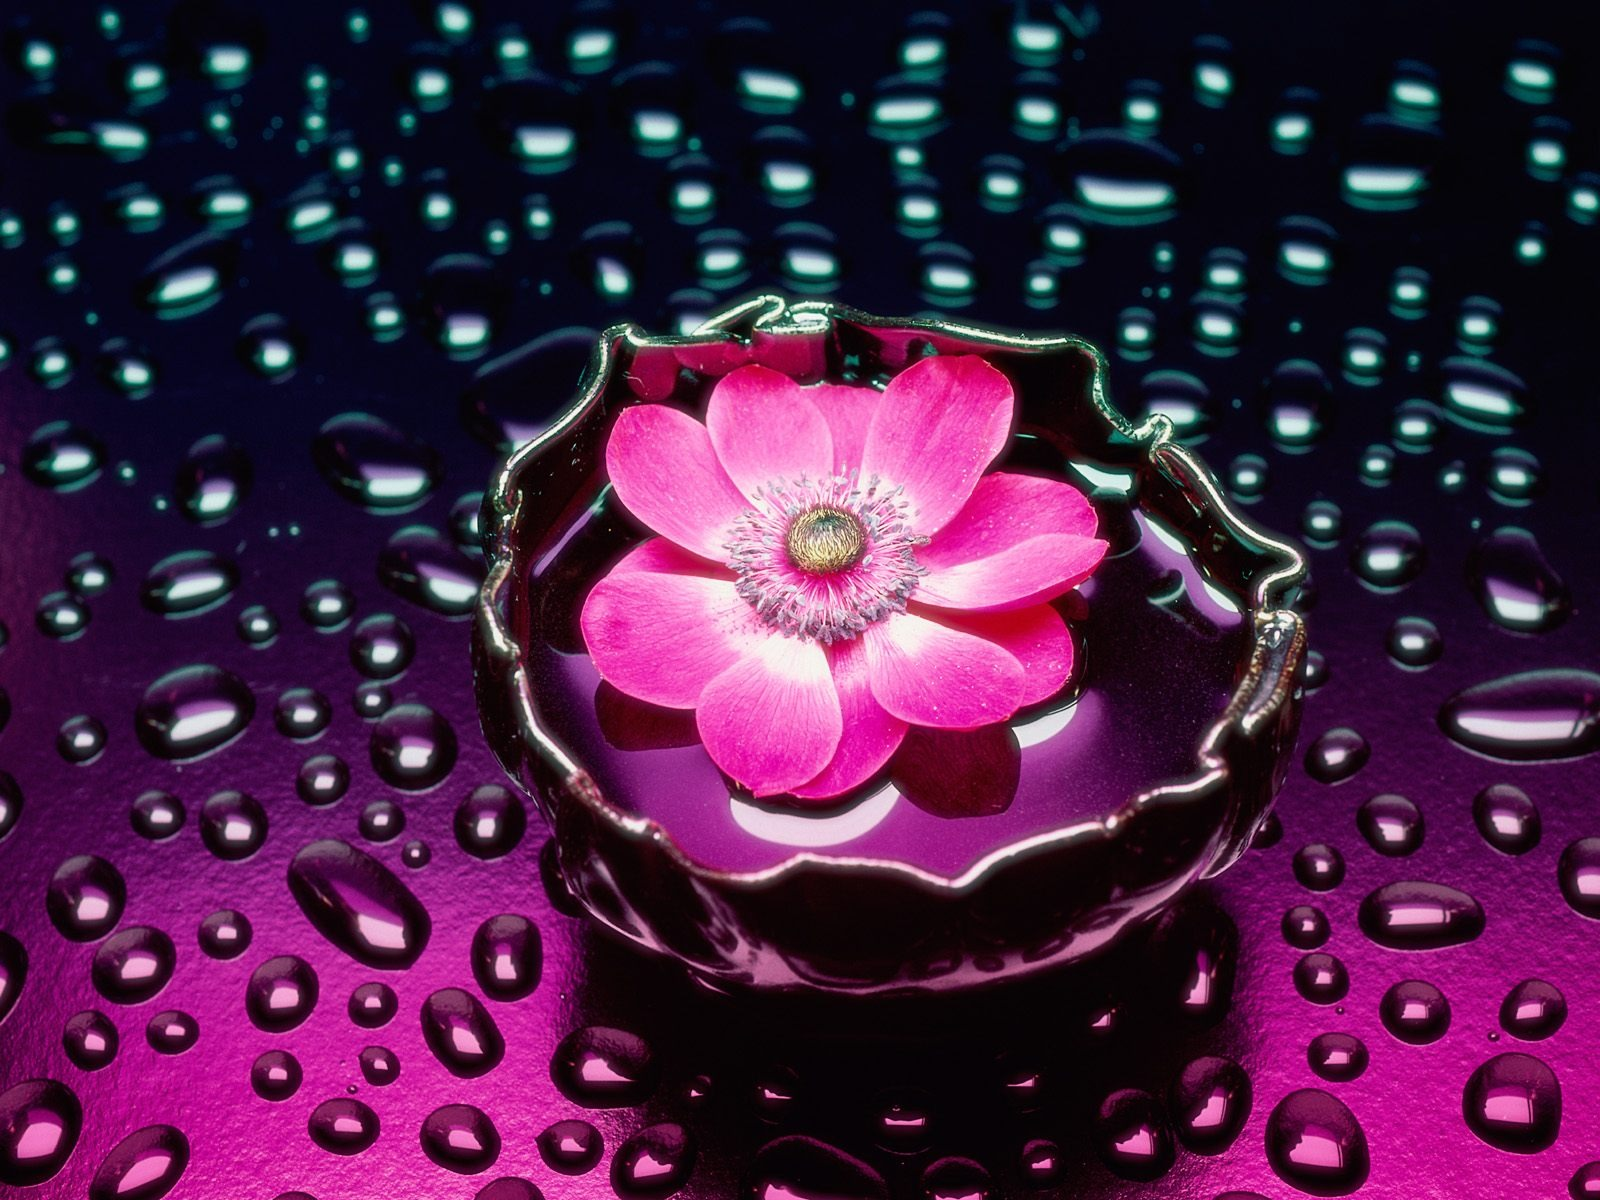 Petals And Water Wallpaper Flowers Nature Wallpapers In Jpg Format